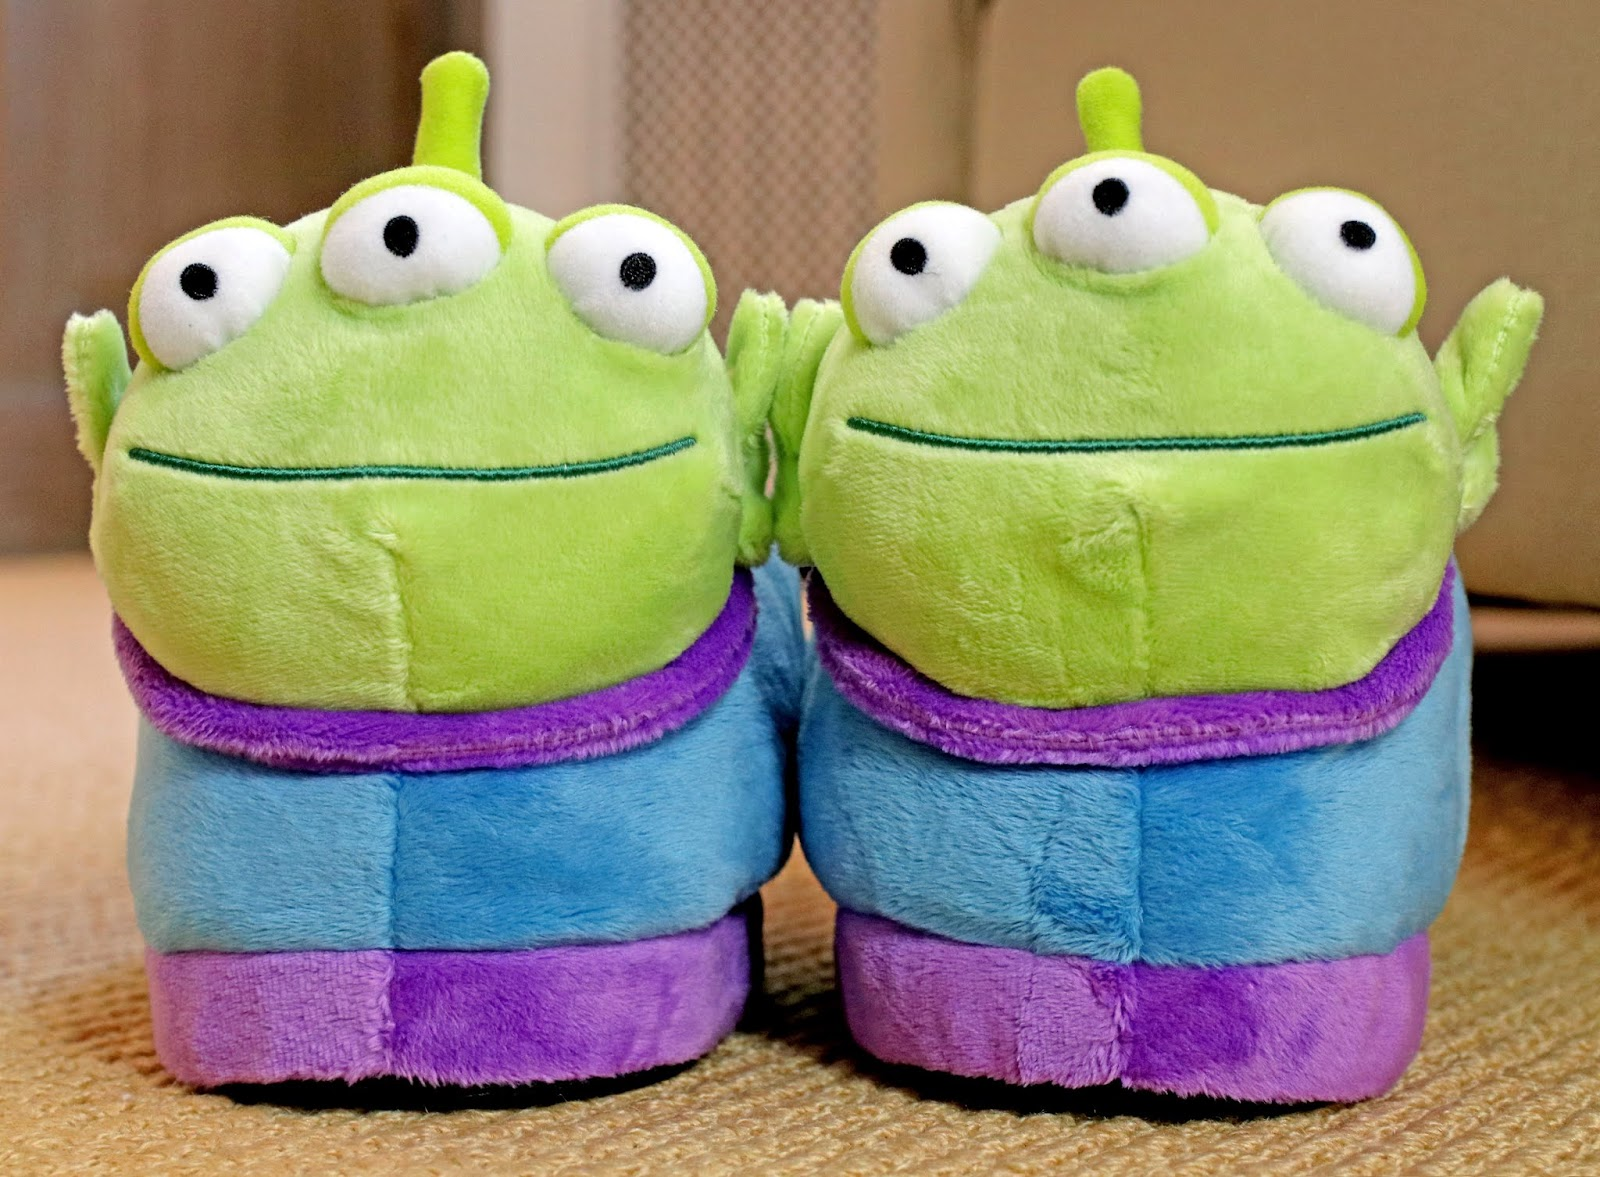 toy story alien plush slippers happy feet review